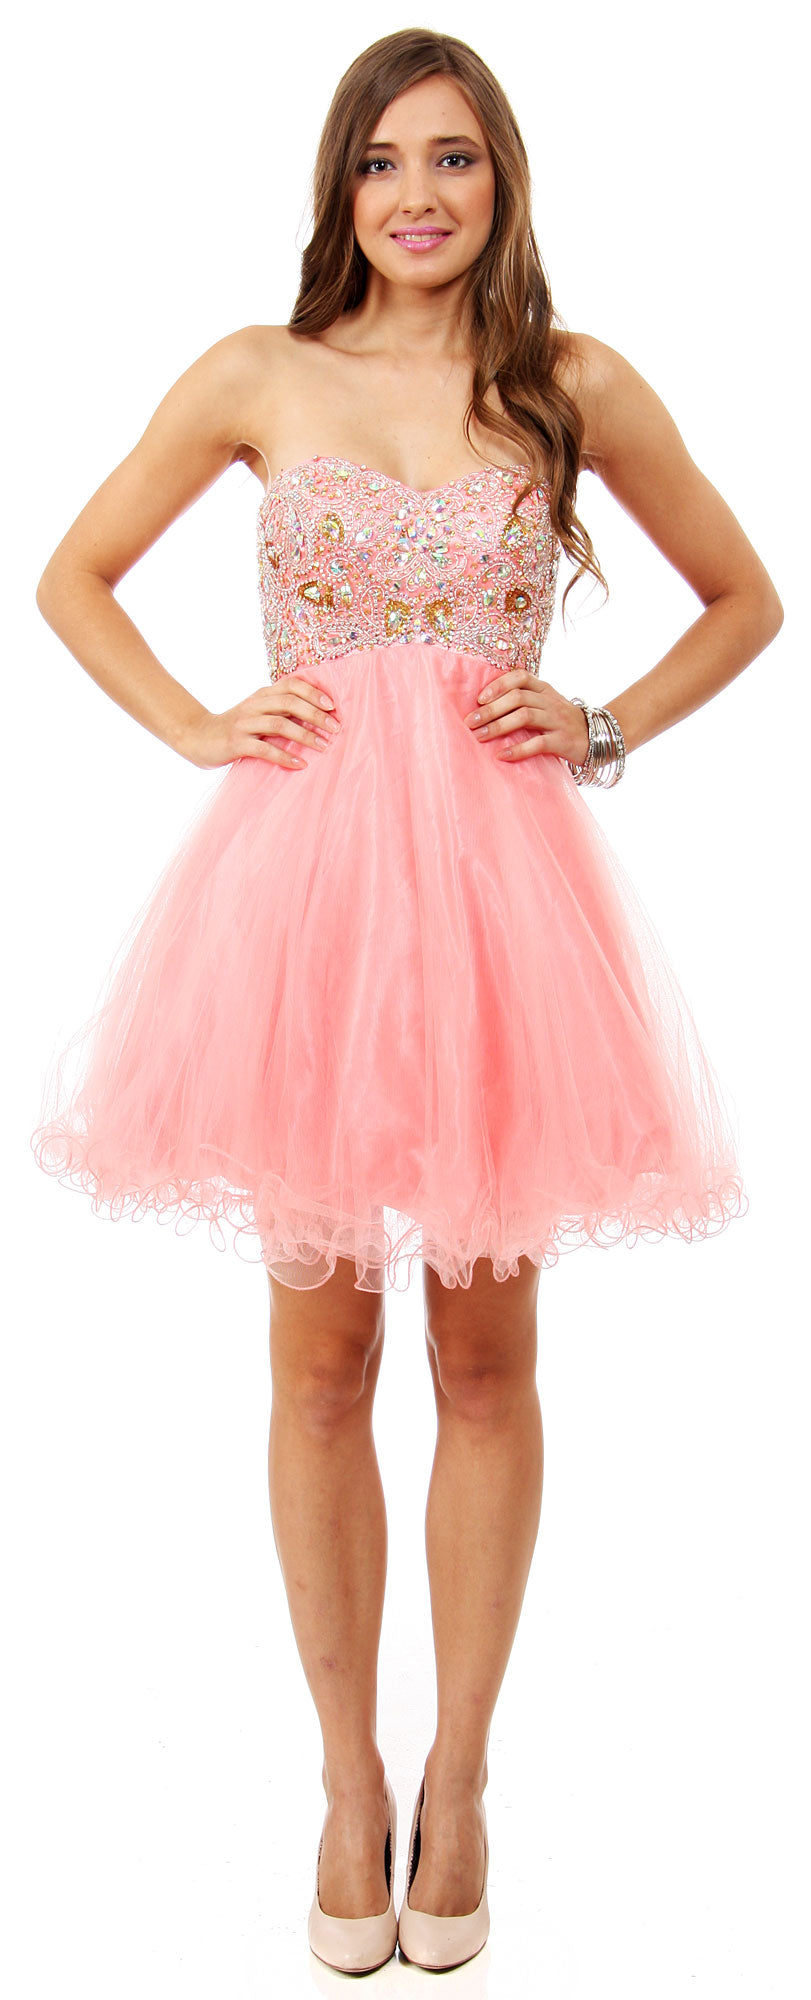 Main image of Strapless Beaded Bust Mesh Short Party Prom Dress